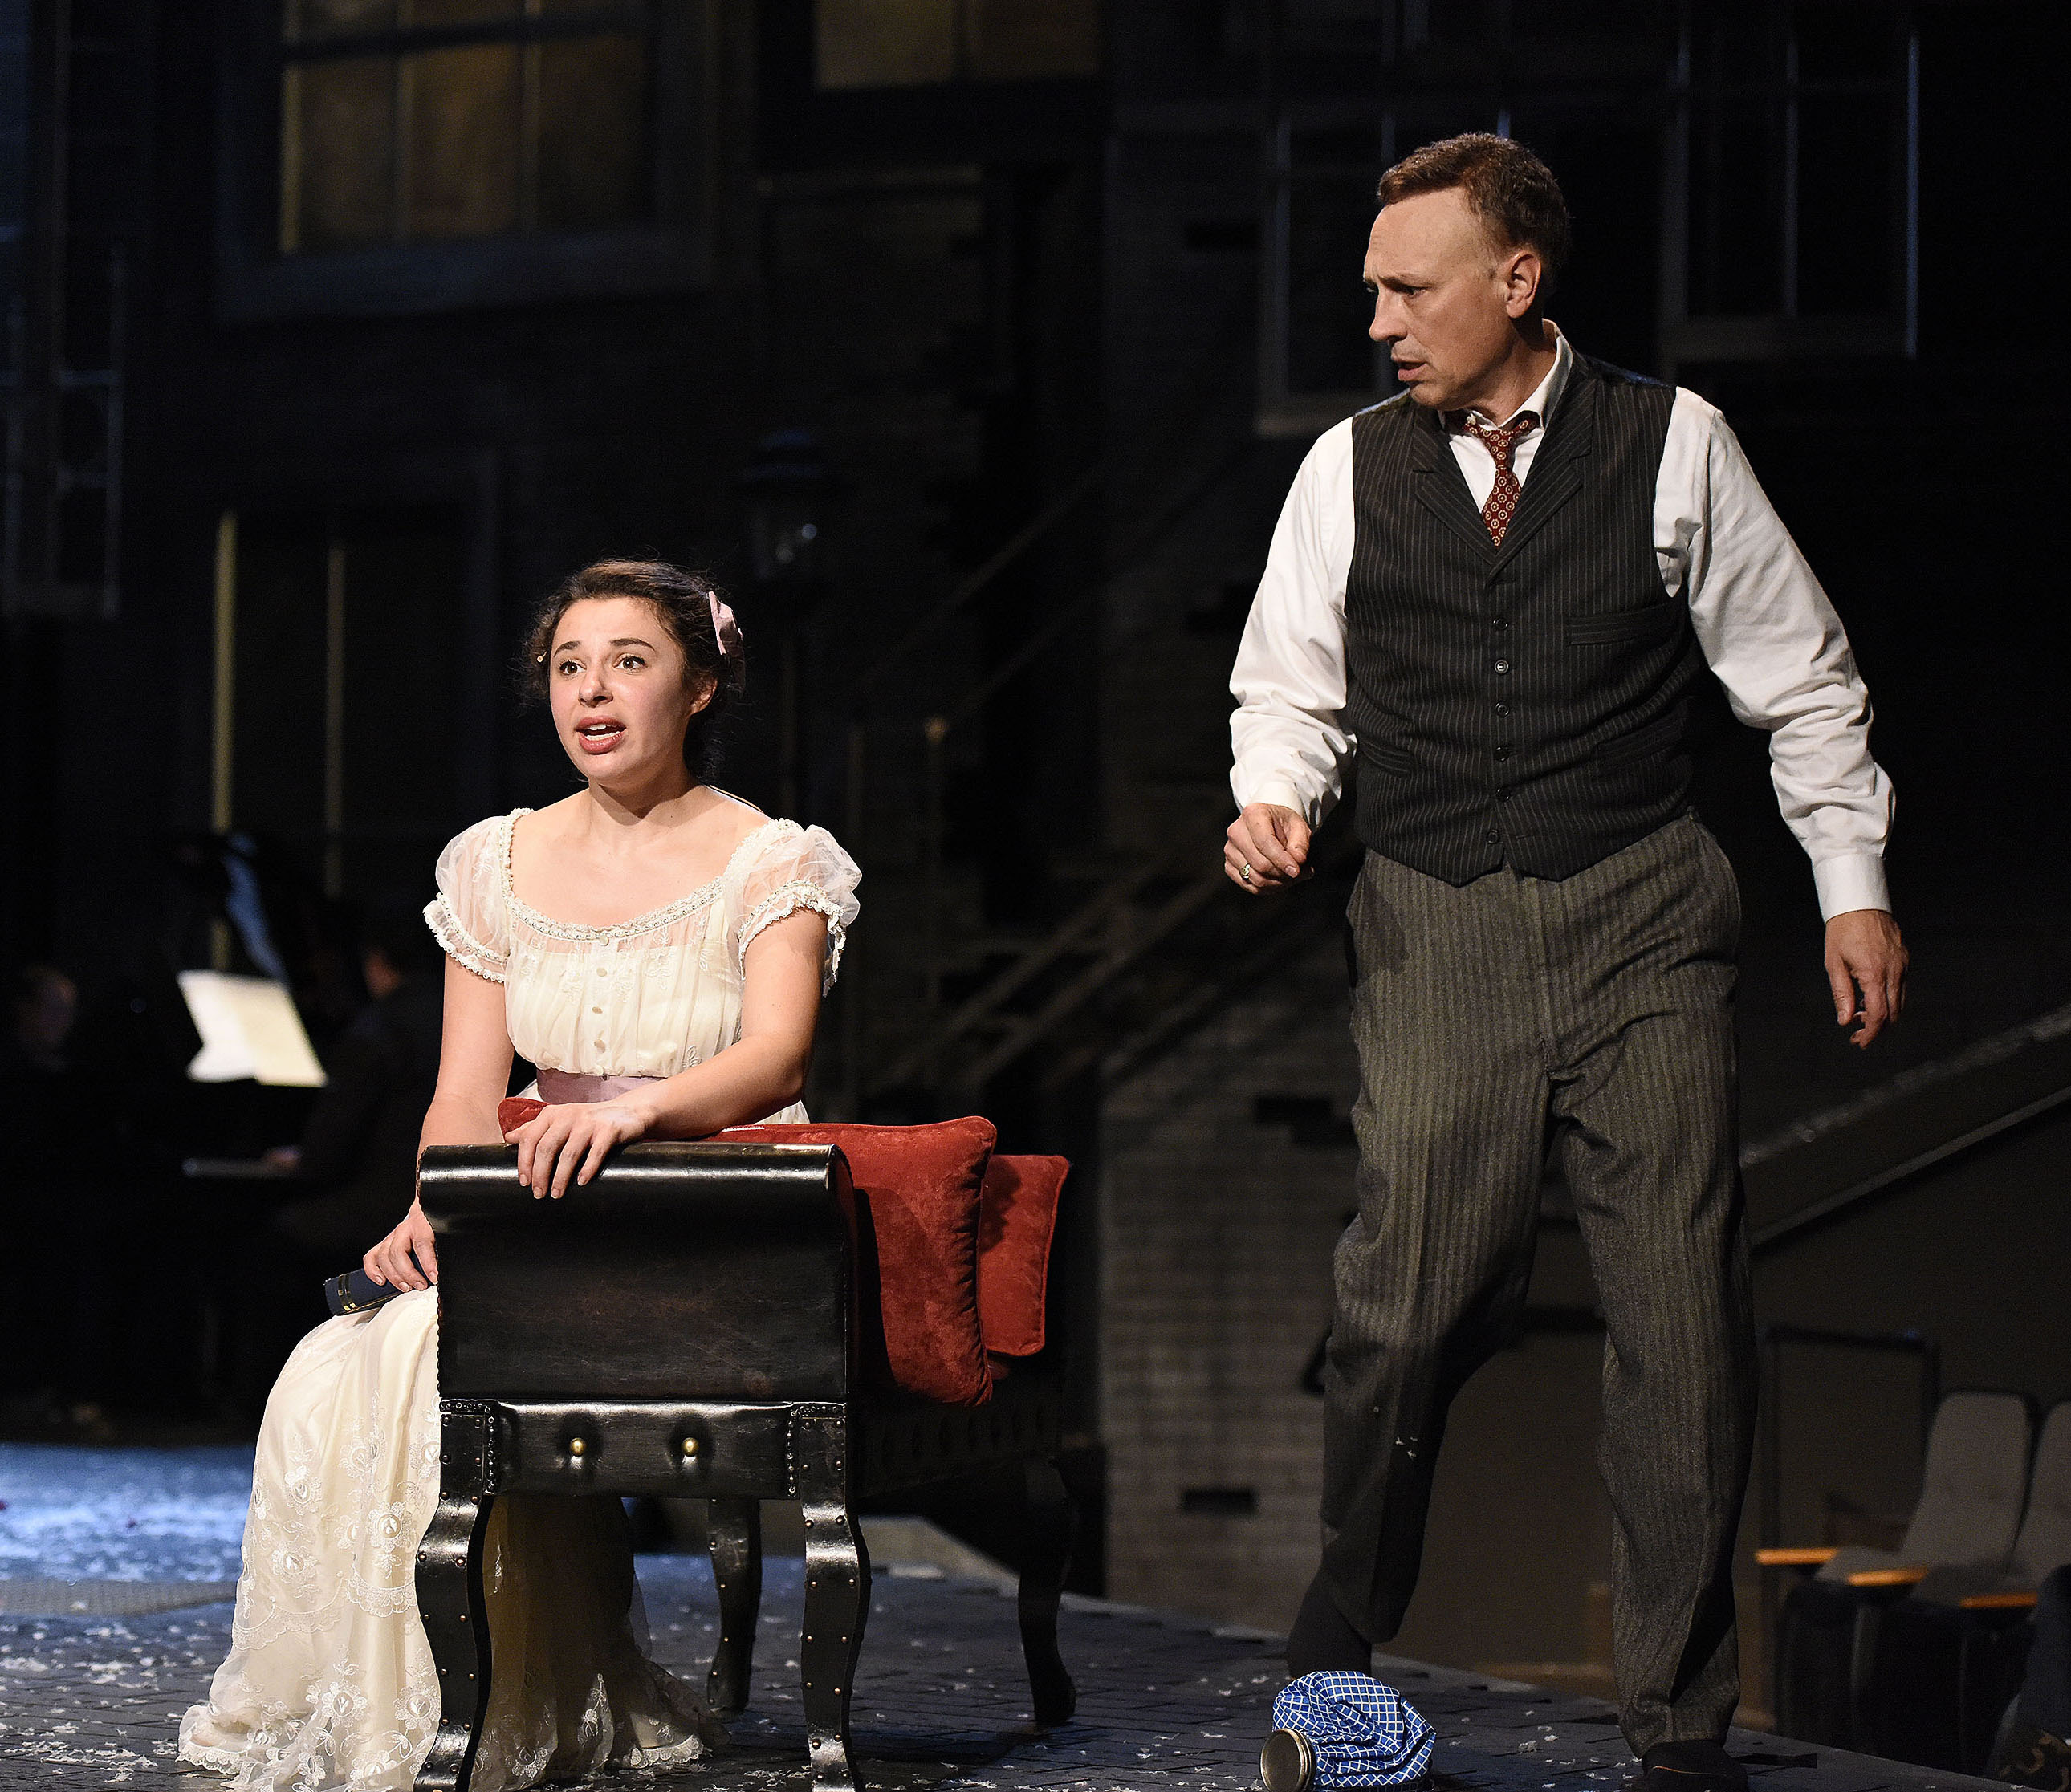 In PlayMakers' 2017 production of 'My Fair Lady,' Eliza Doolittle (Mia Pinero) discovers the power of language to give her agency, as her teacher, Henry Higgins (Jefrey Blair Cornell), looks on gobsmacked.